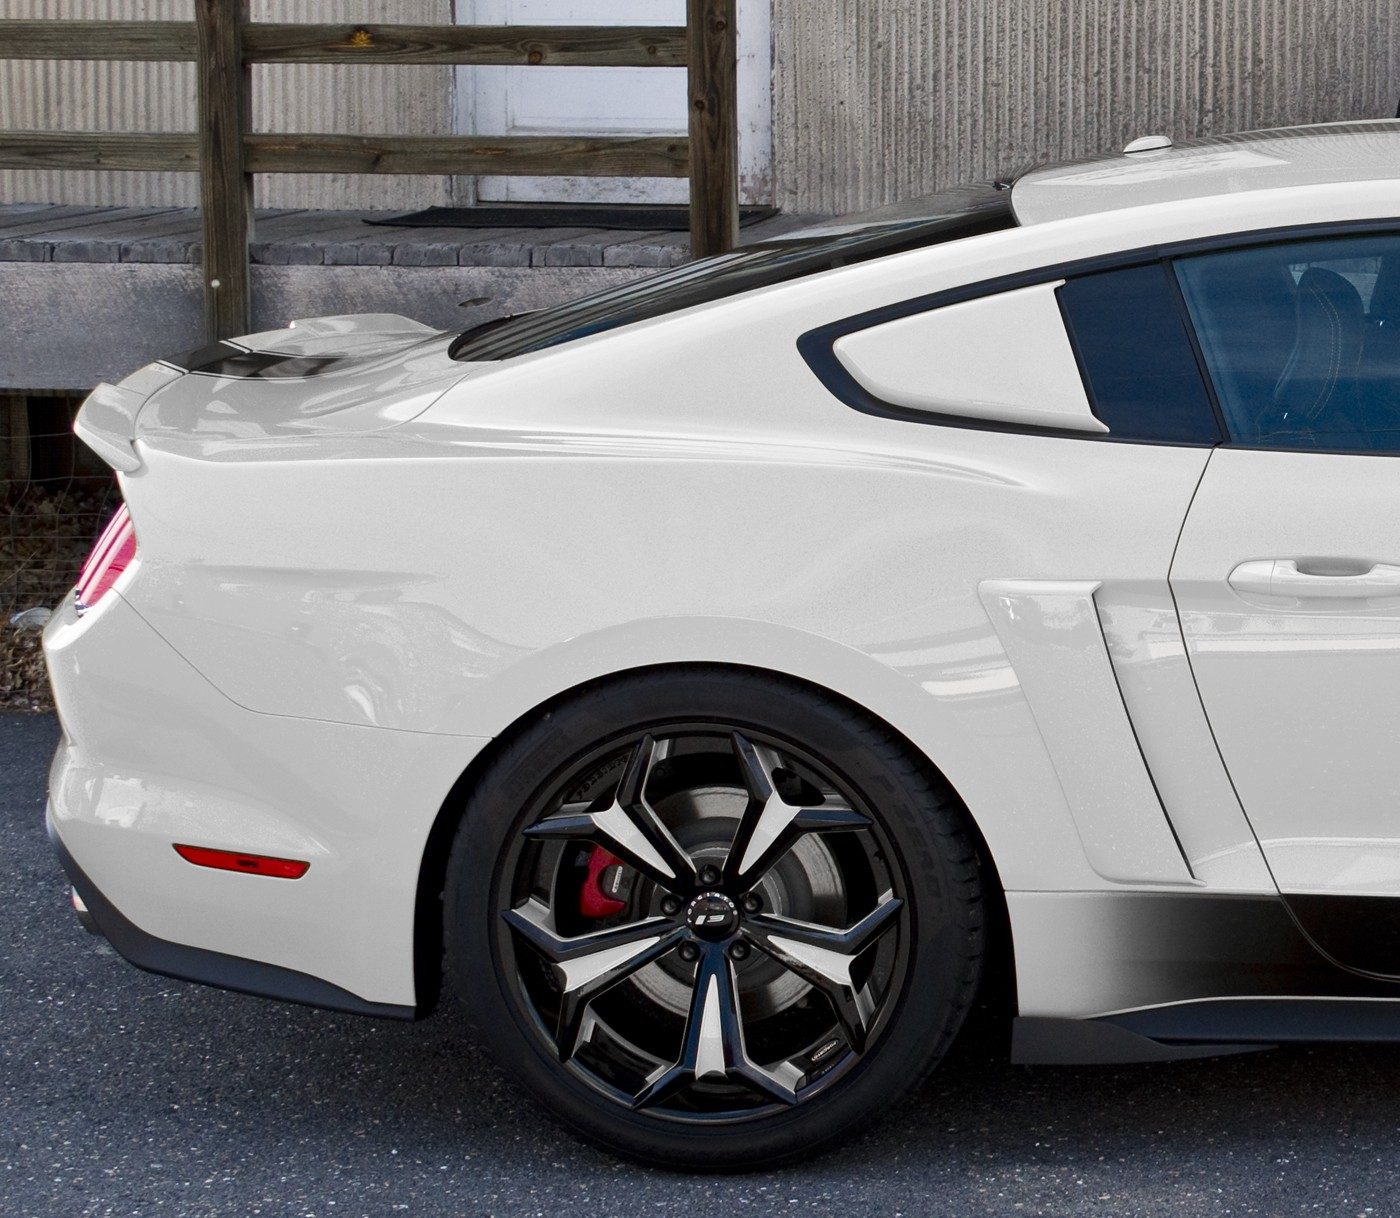 Ford Gt 2017 Price >> 2015-2017 Mustang Genuine Ford Side Quarter Window Scoops ...